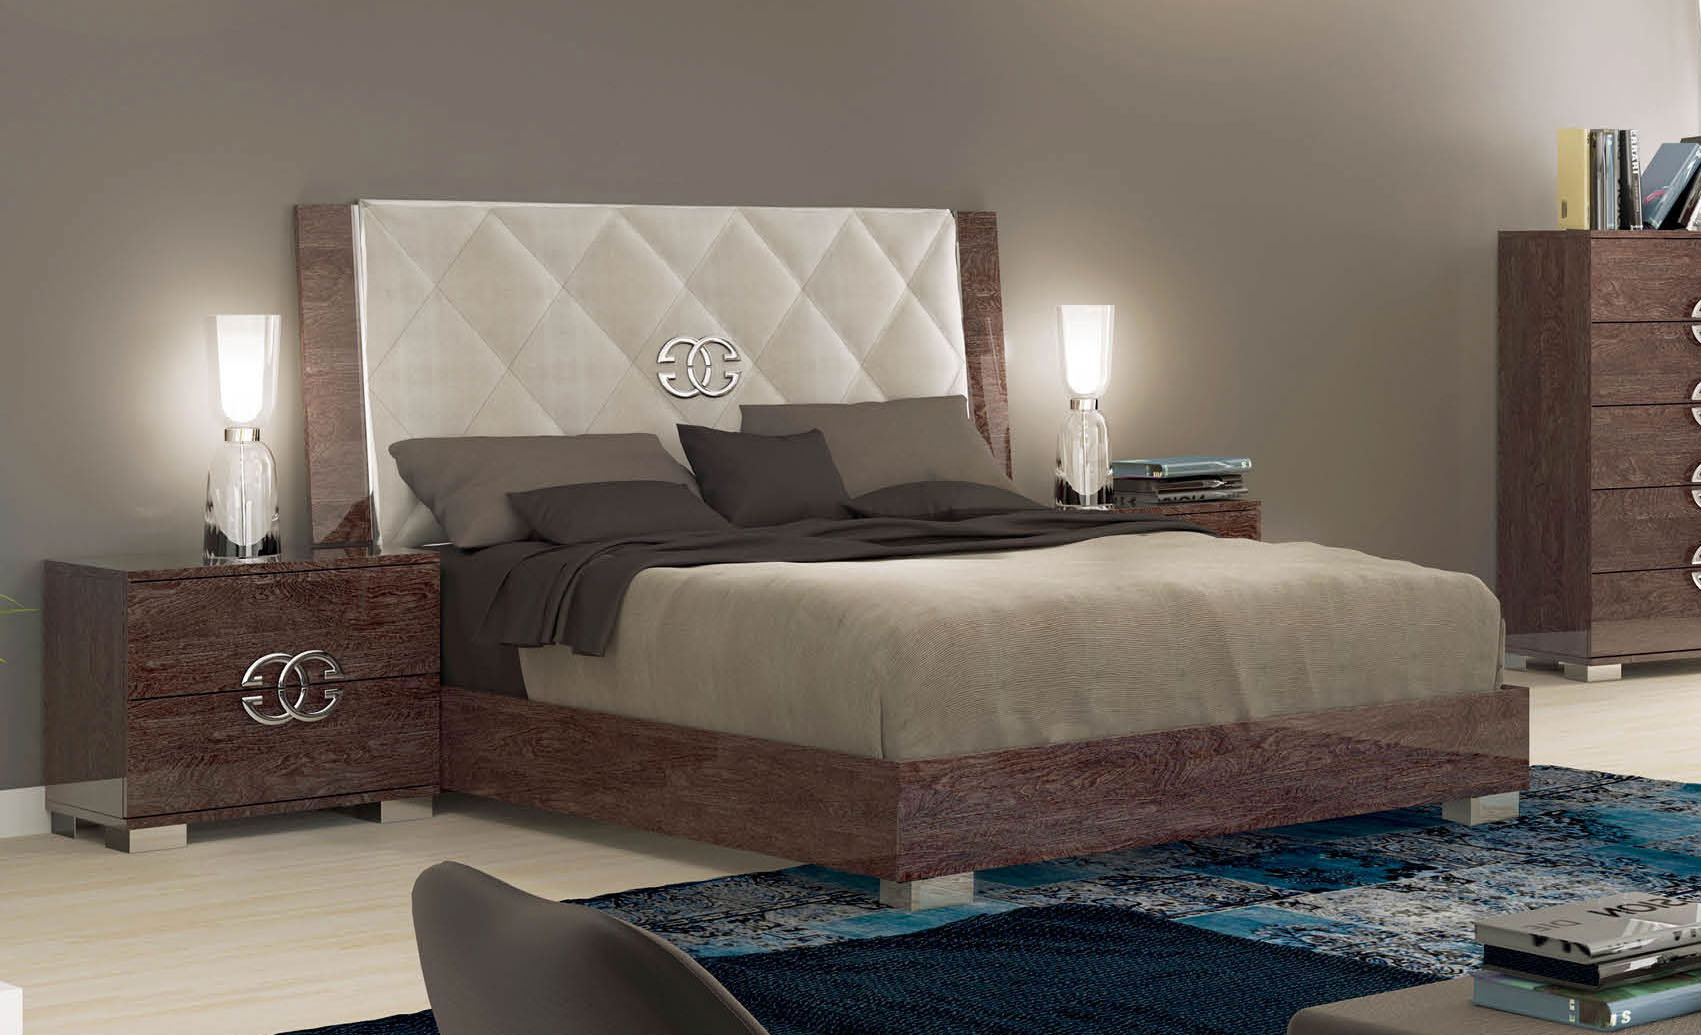 Unique Leather High End Platform Bed Birmingham Alabama ESFPRE